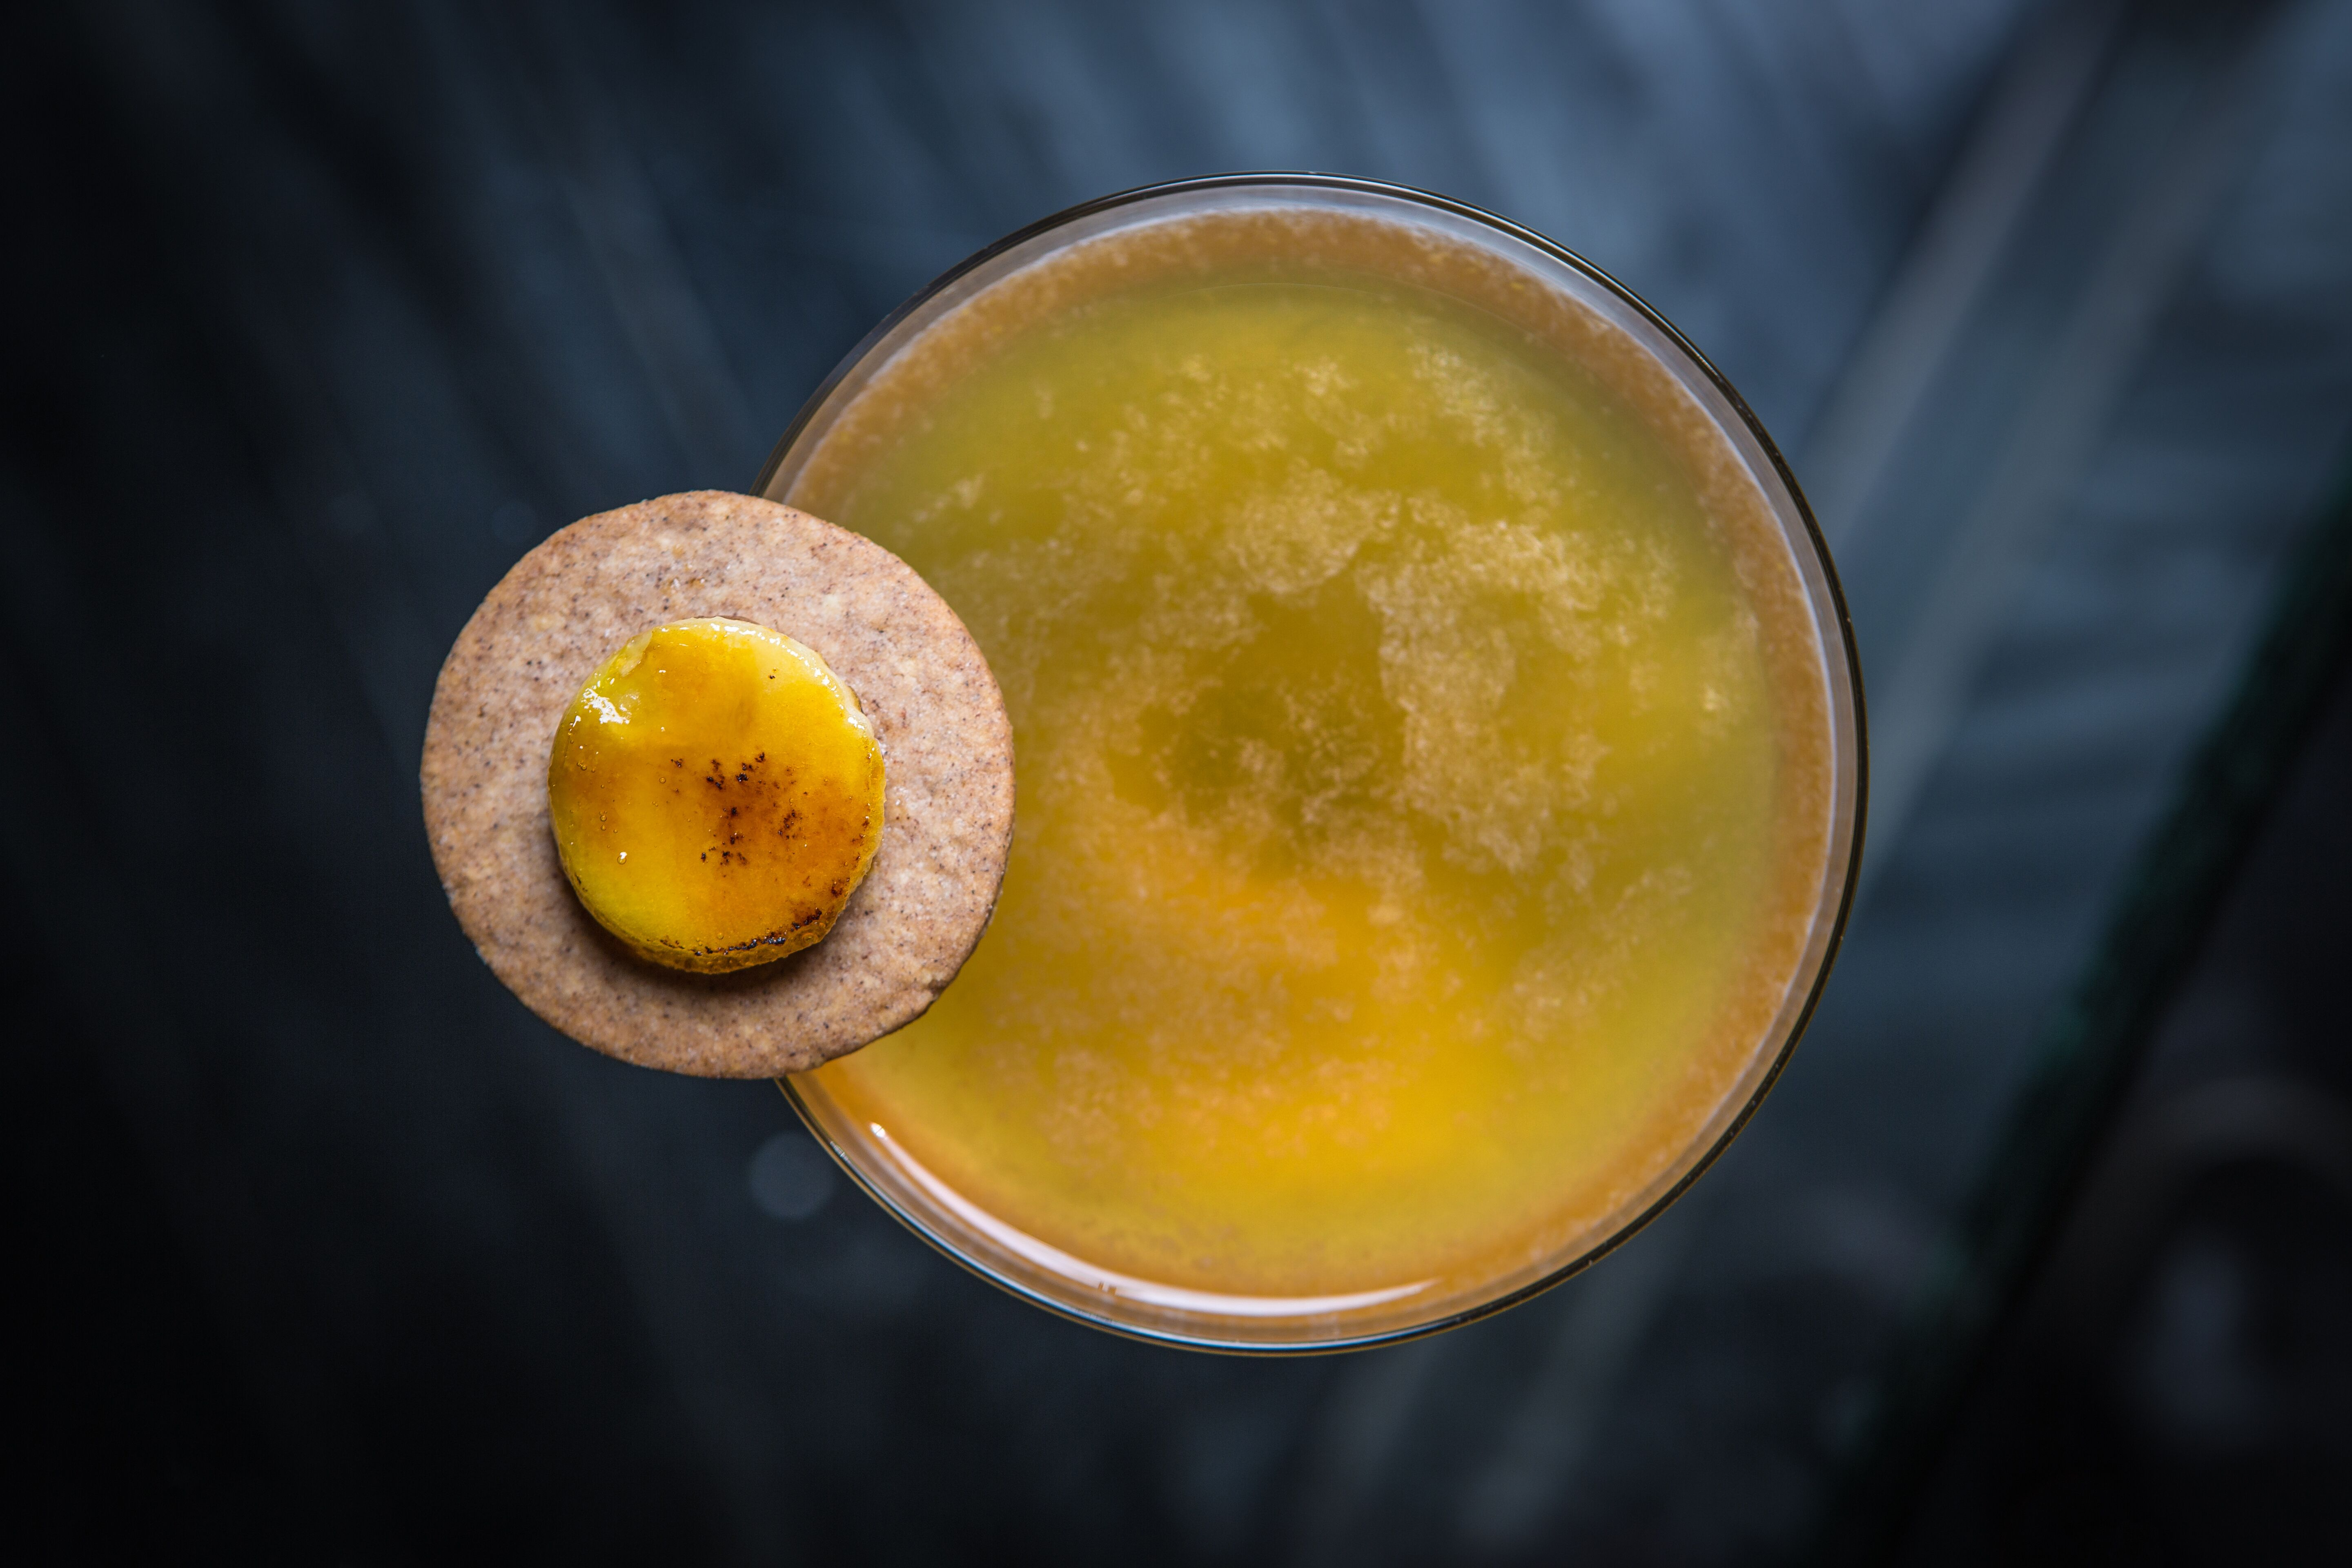 Bob Peters | Innovative Cocktails & Consulting